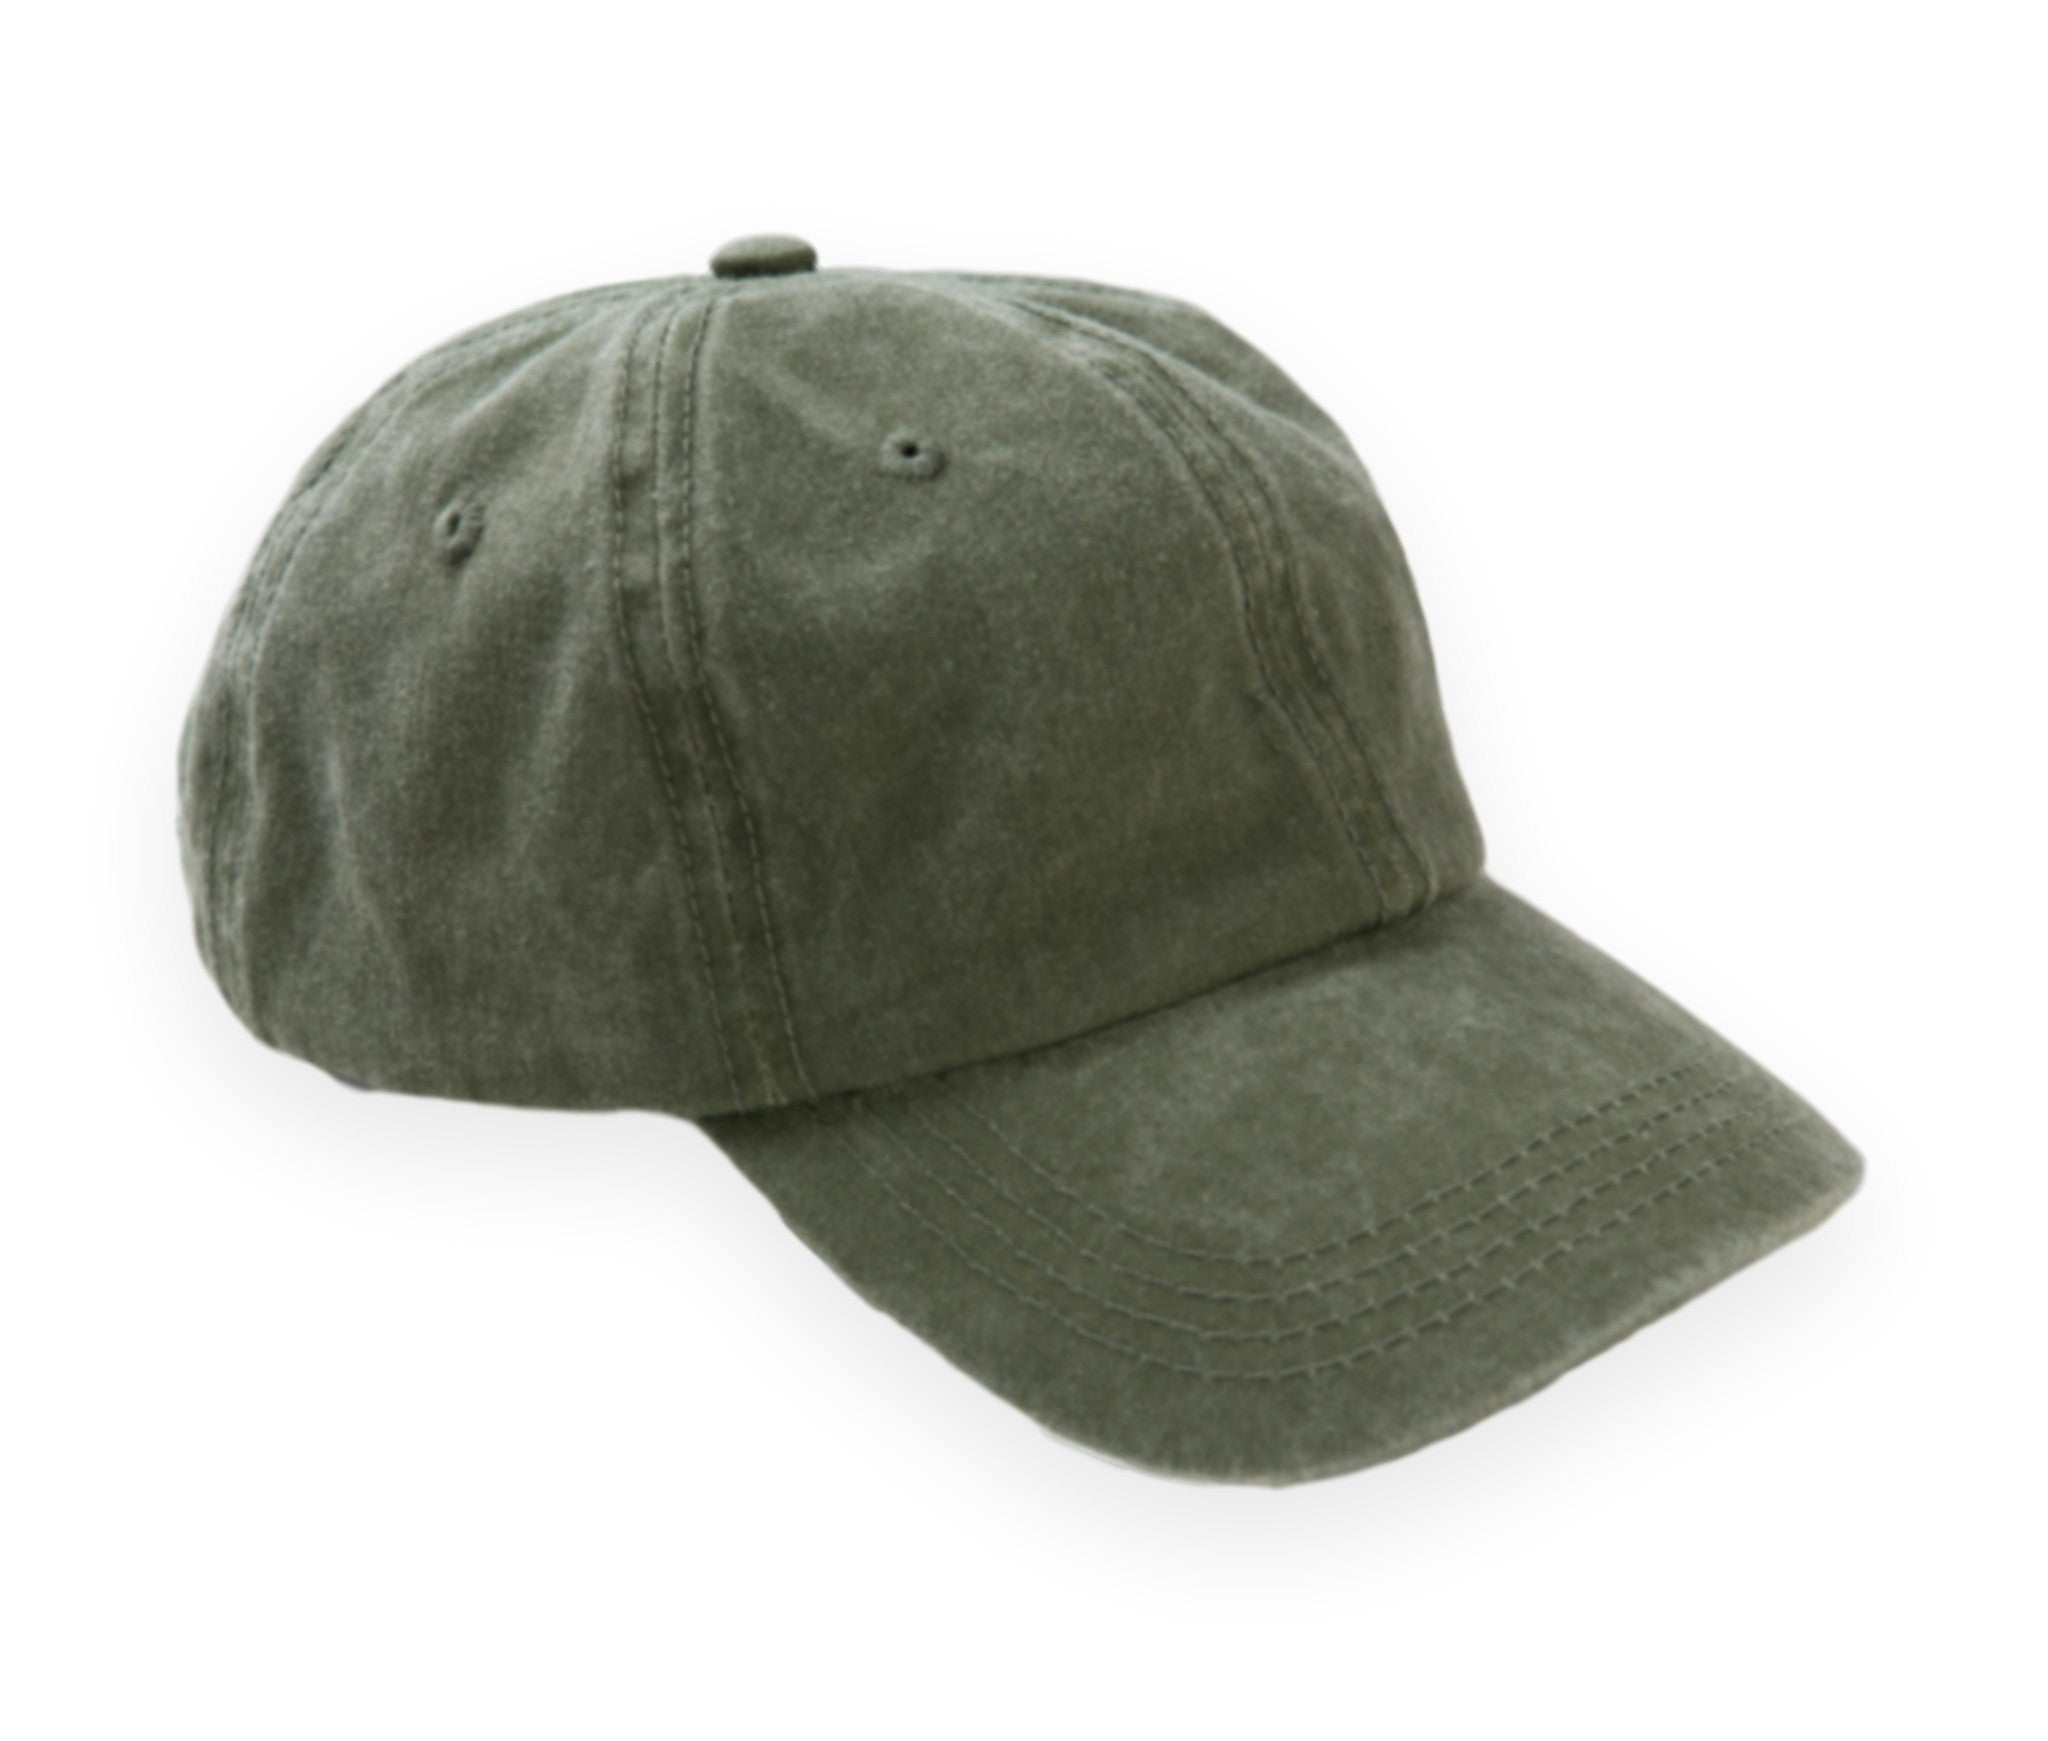 The Weekend Cap